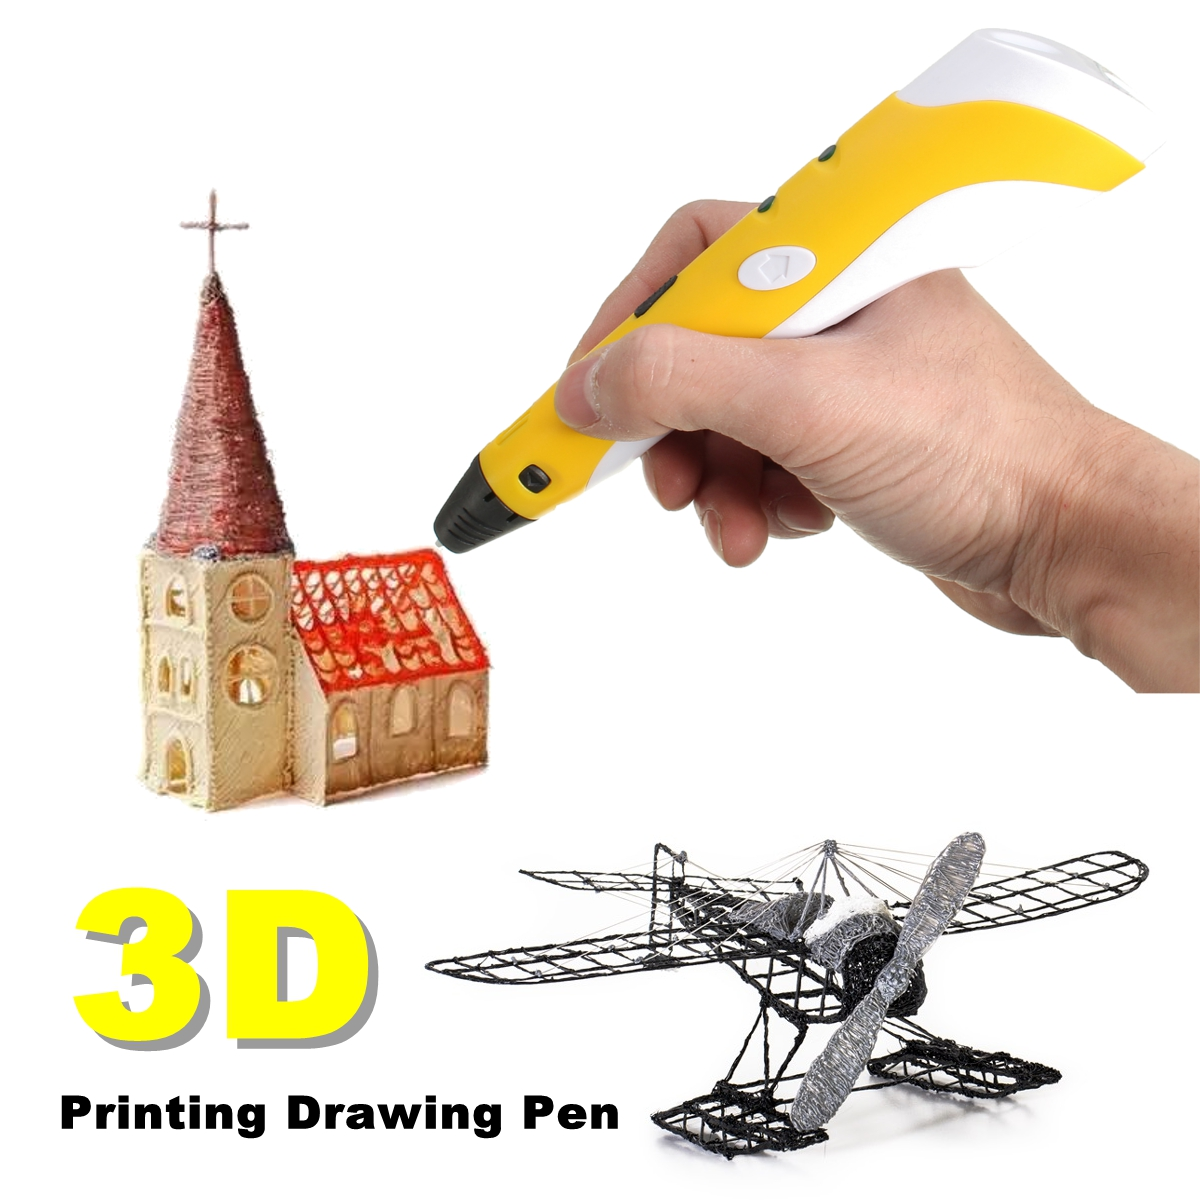 3D Printing Drawing Pen Crafting Modeling ABS Filament Art Printer Tool